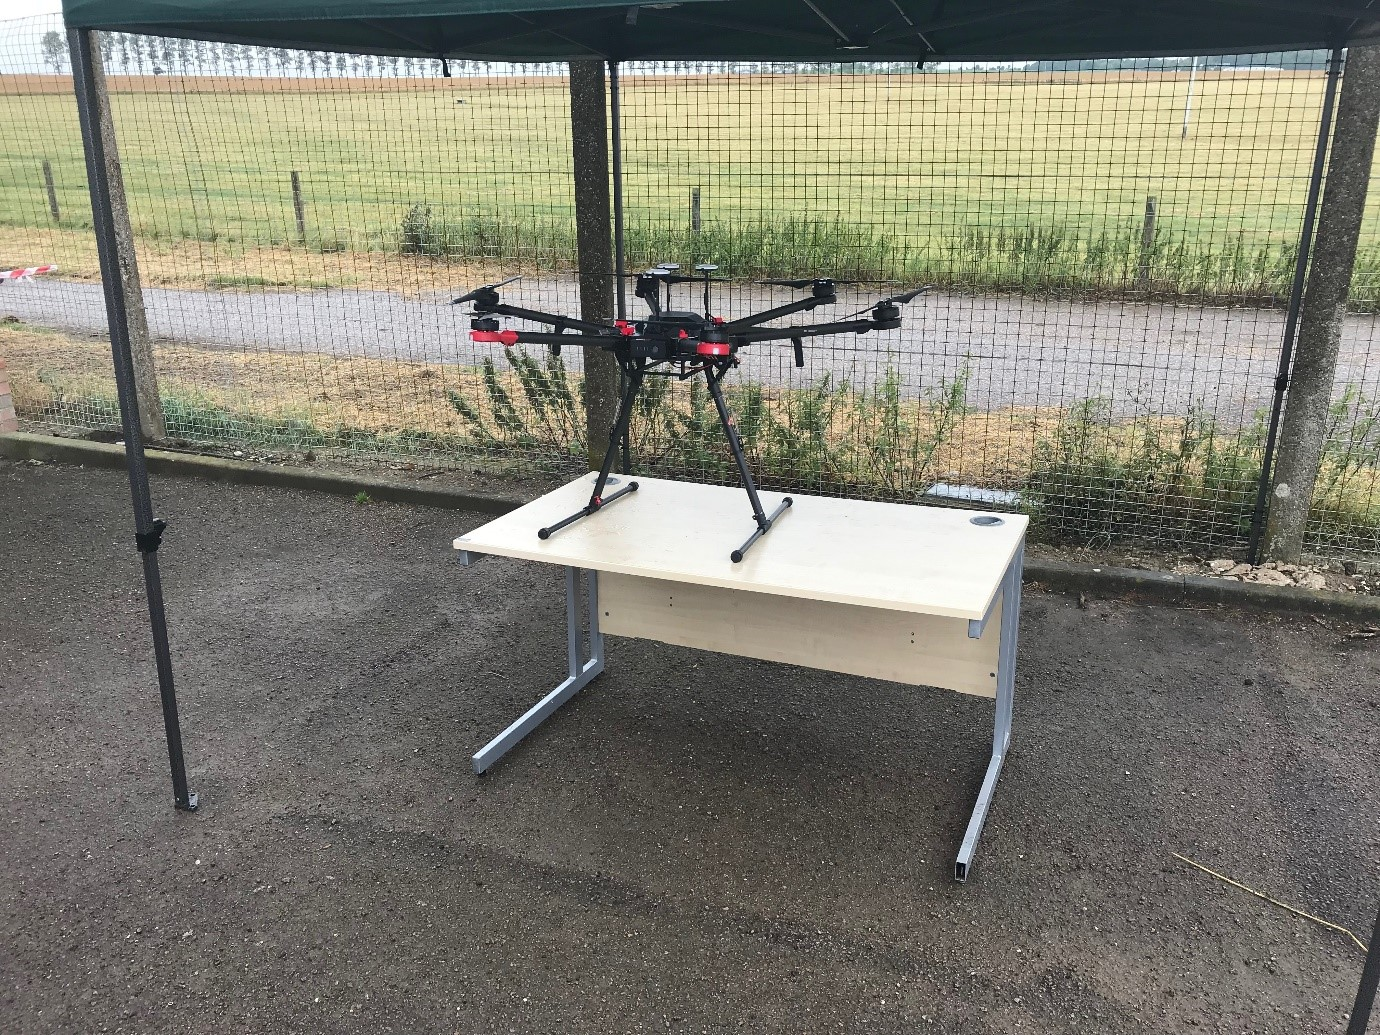 A new drone at Baldock